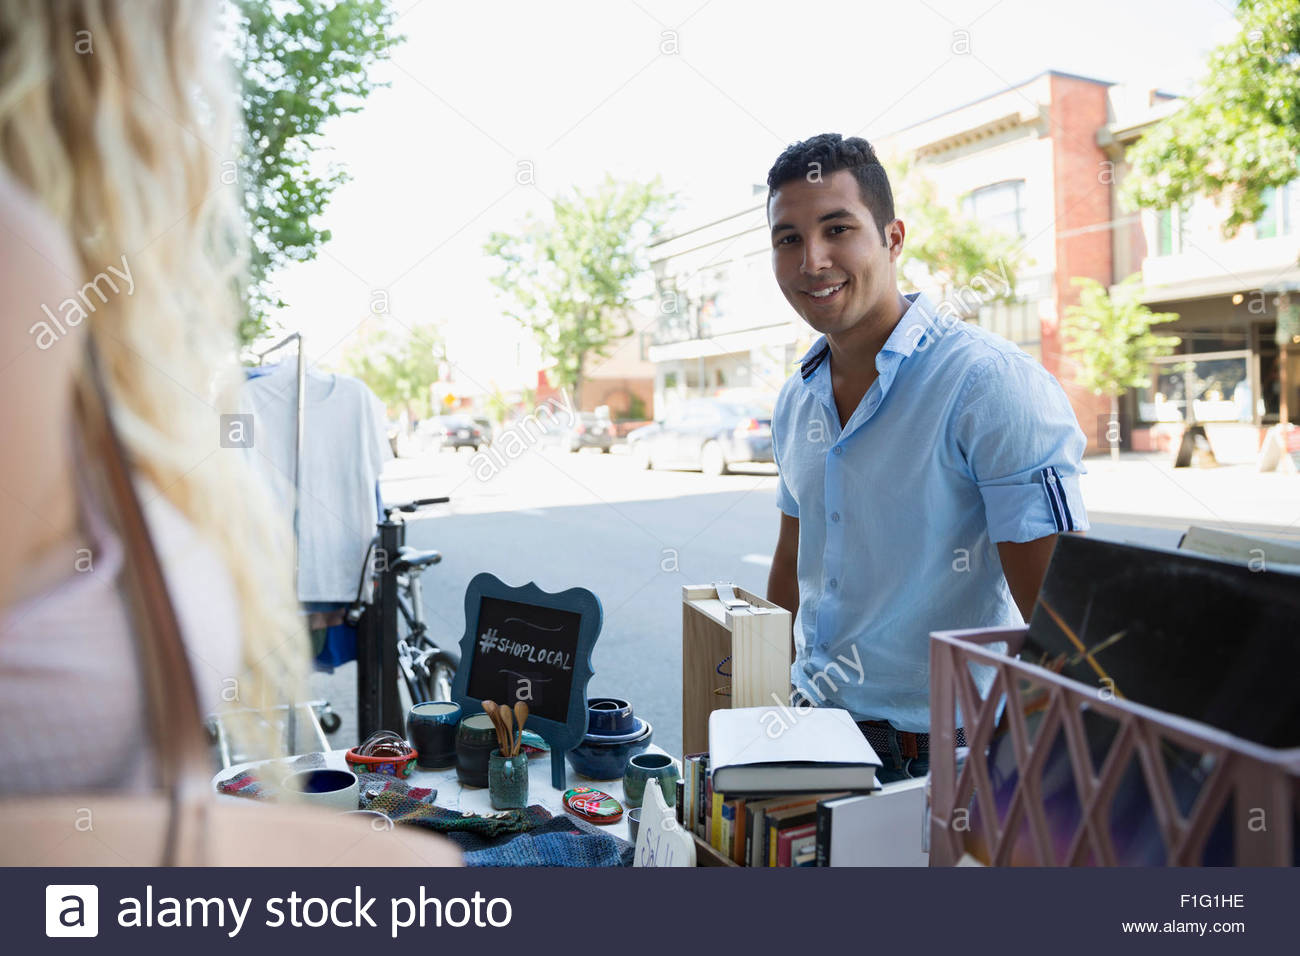 Portrait smiling man at sidewalk sale - Stock Image